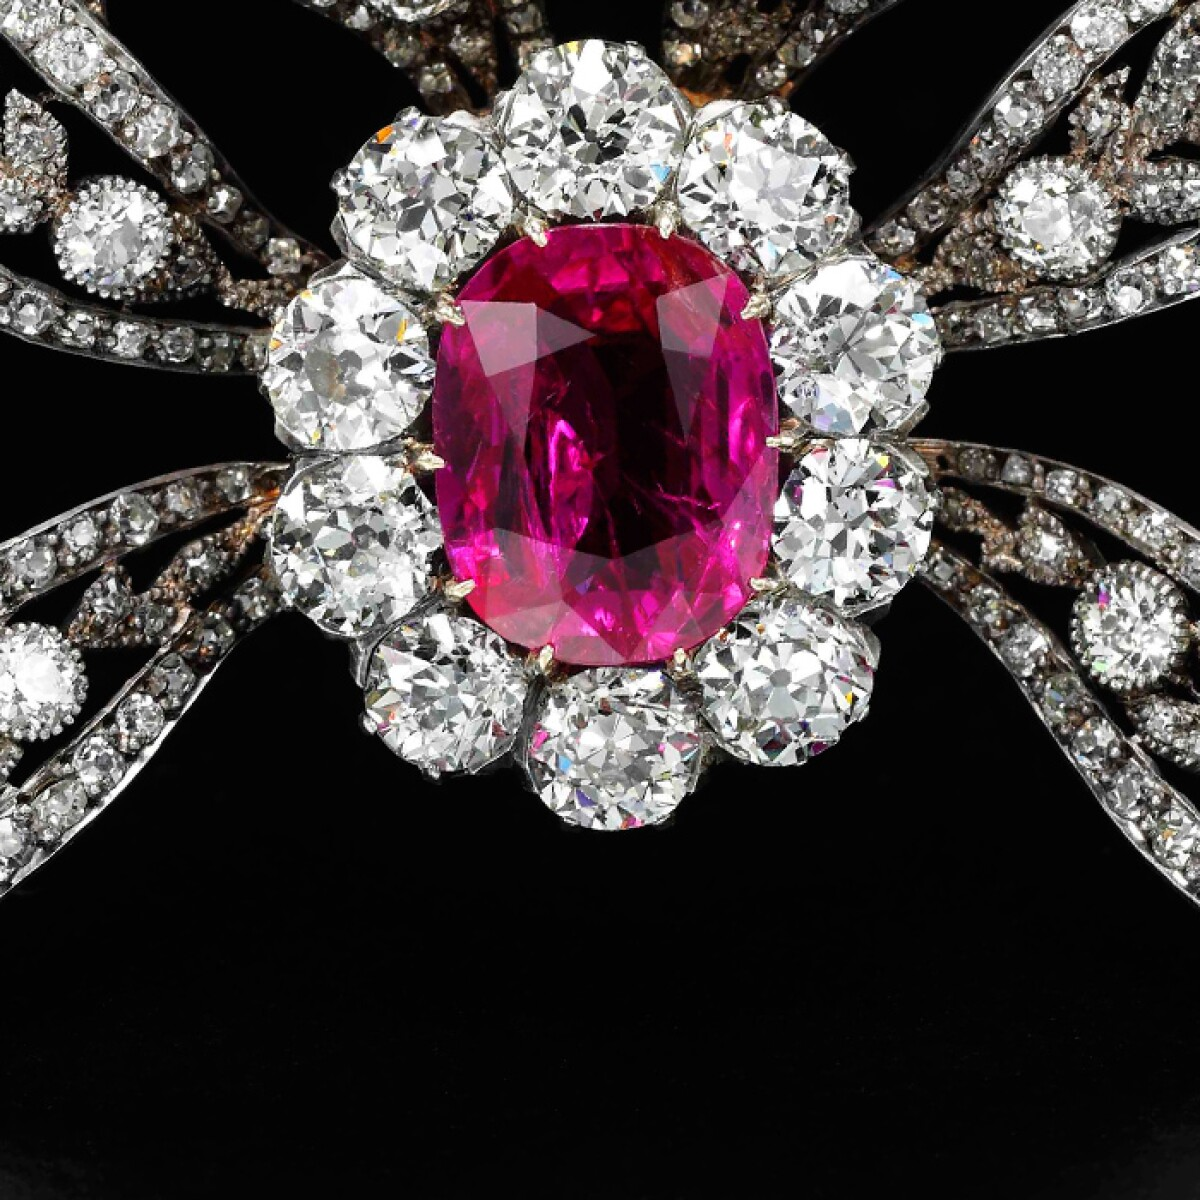 Marie-Antoinette's Jewels Come to Auction | Jewelry | Sotheby's